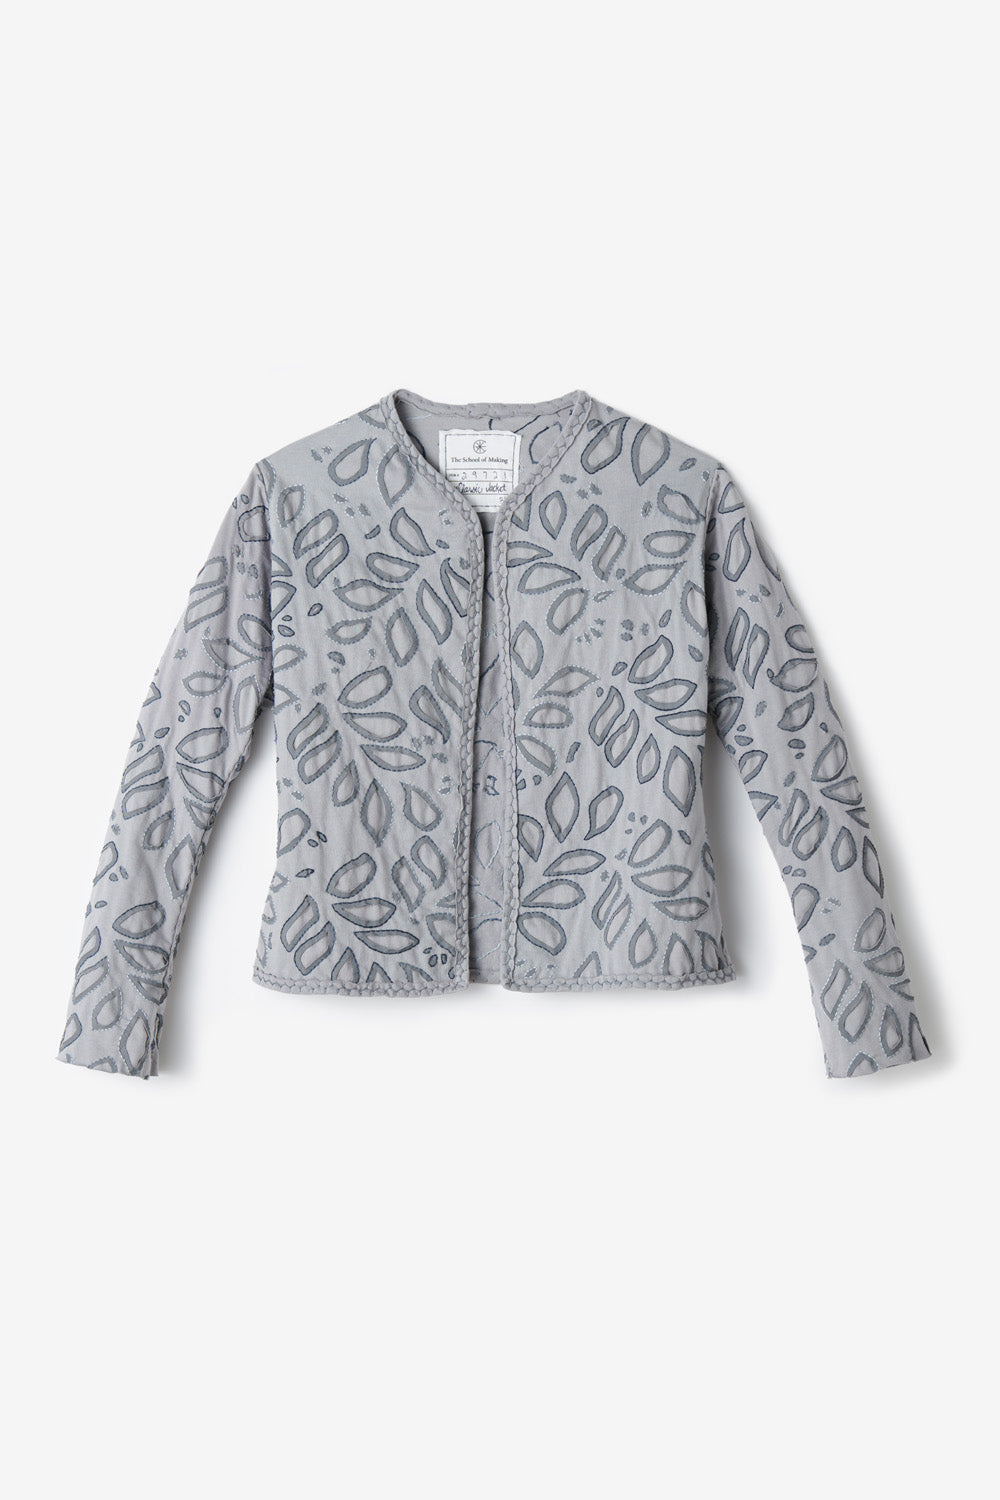 The School of Making Classic Jacket Organic Cotton Women's Jacket with Long Sleeves and Botanic Stencil